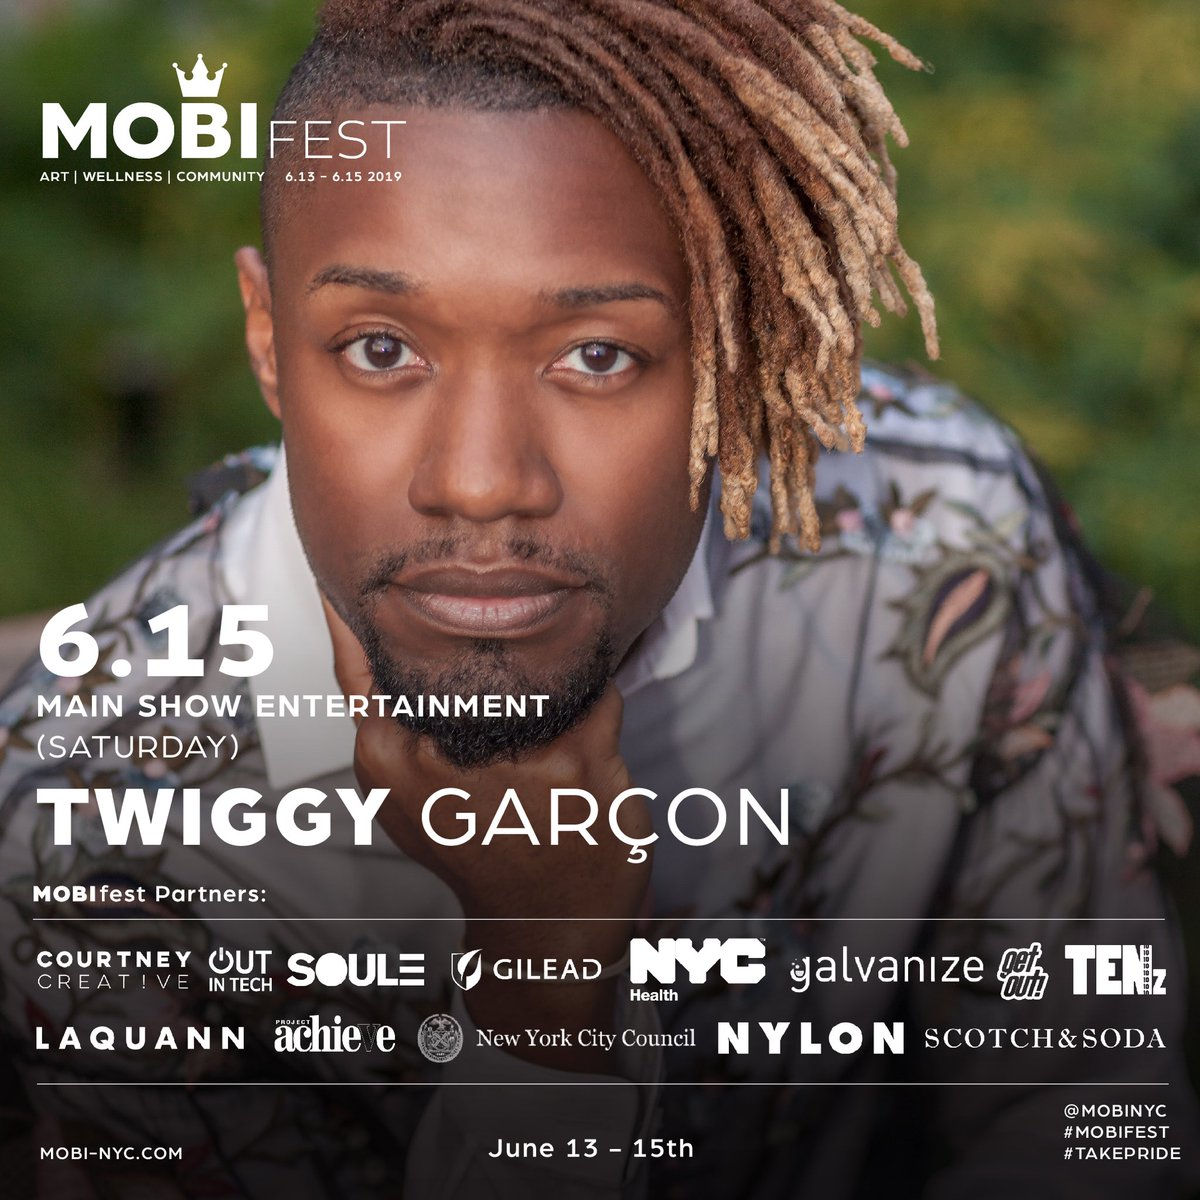 #MOBIfest is LIT! #Ballroom 🏆🙌🏽 Follow the link attached for details on our VIP access 👉🏽 mobi-nyc.com